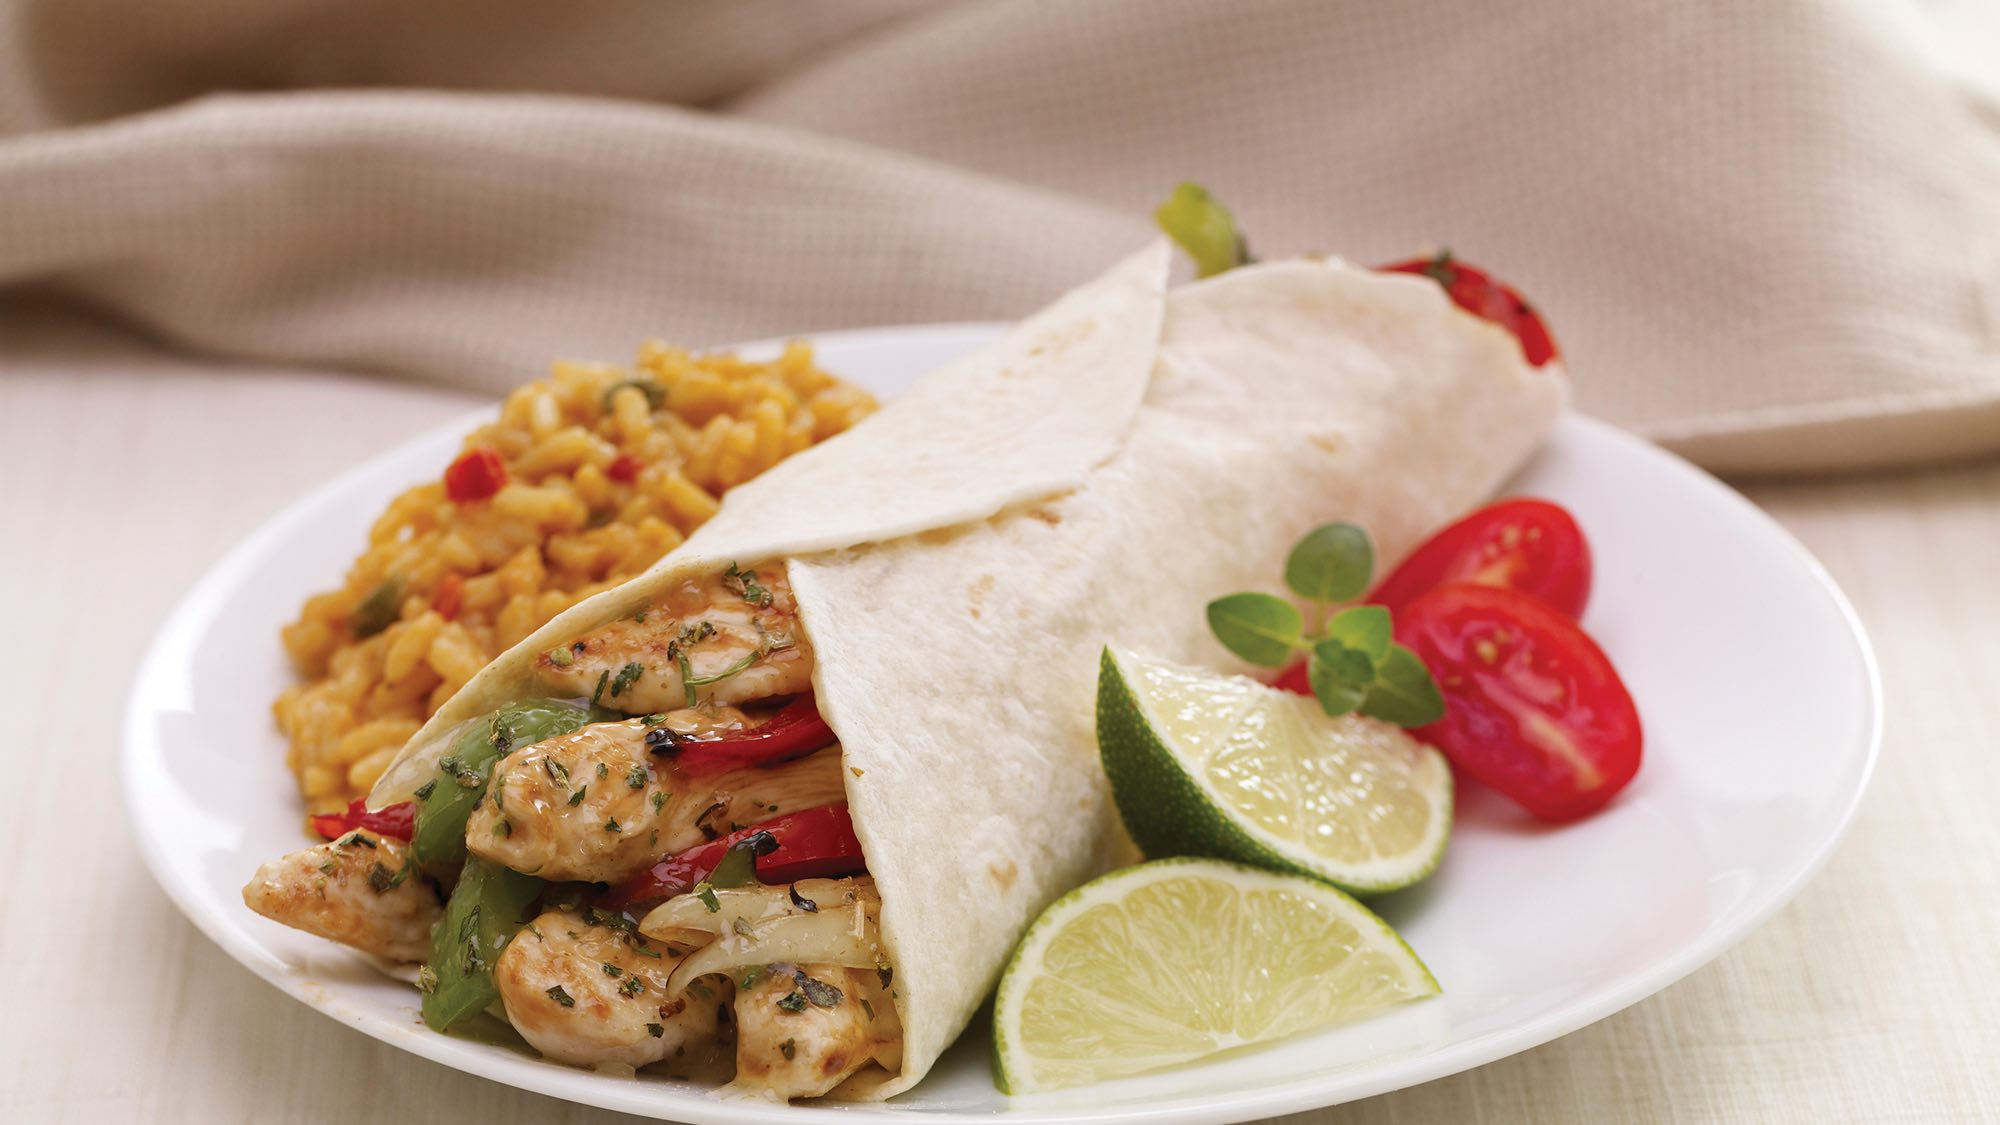 McCormick Garlic Lime Chicken Fajitas